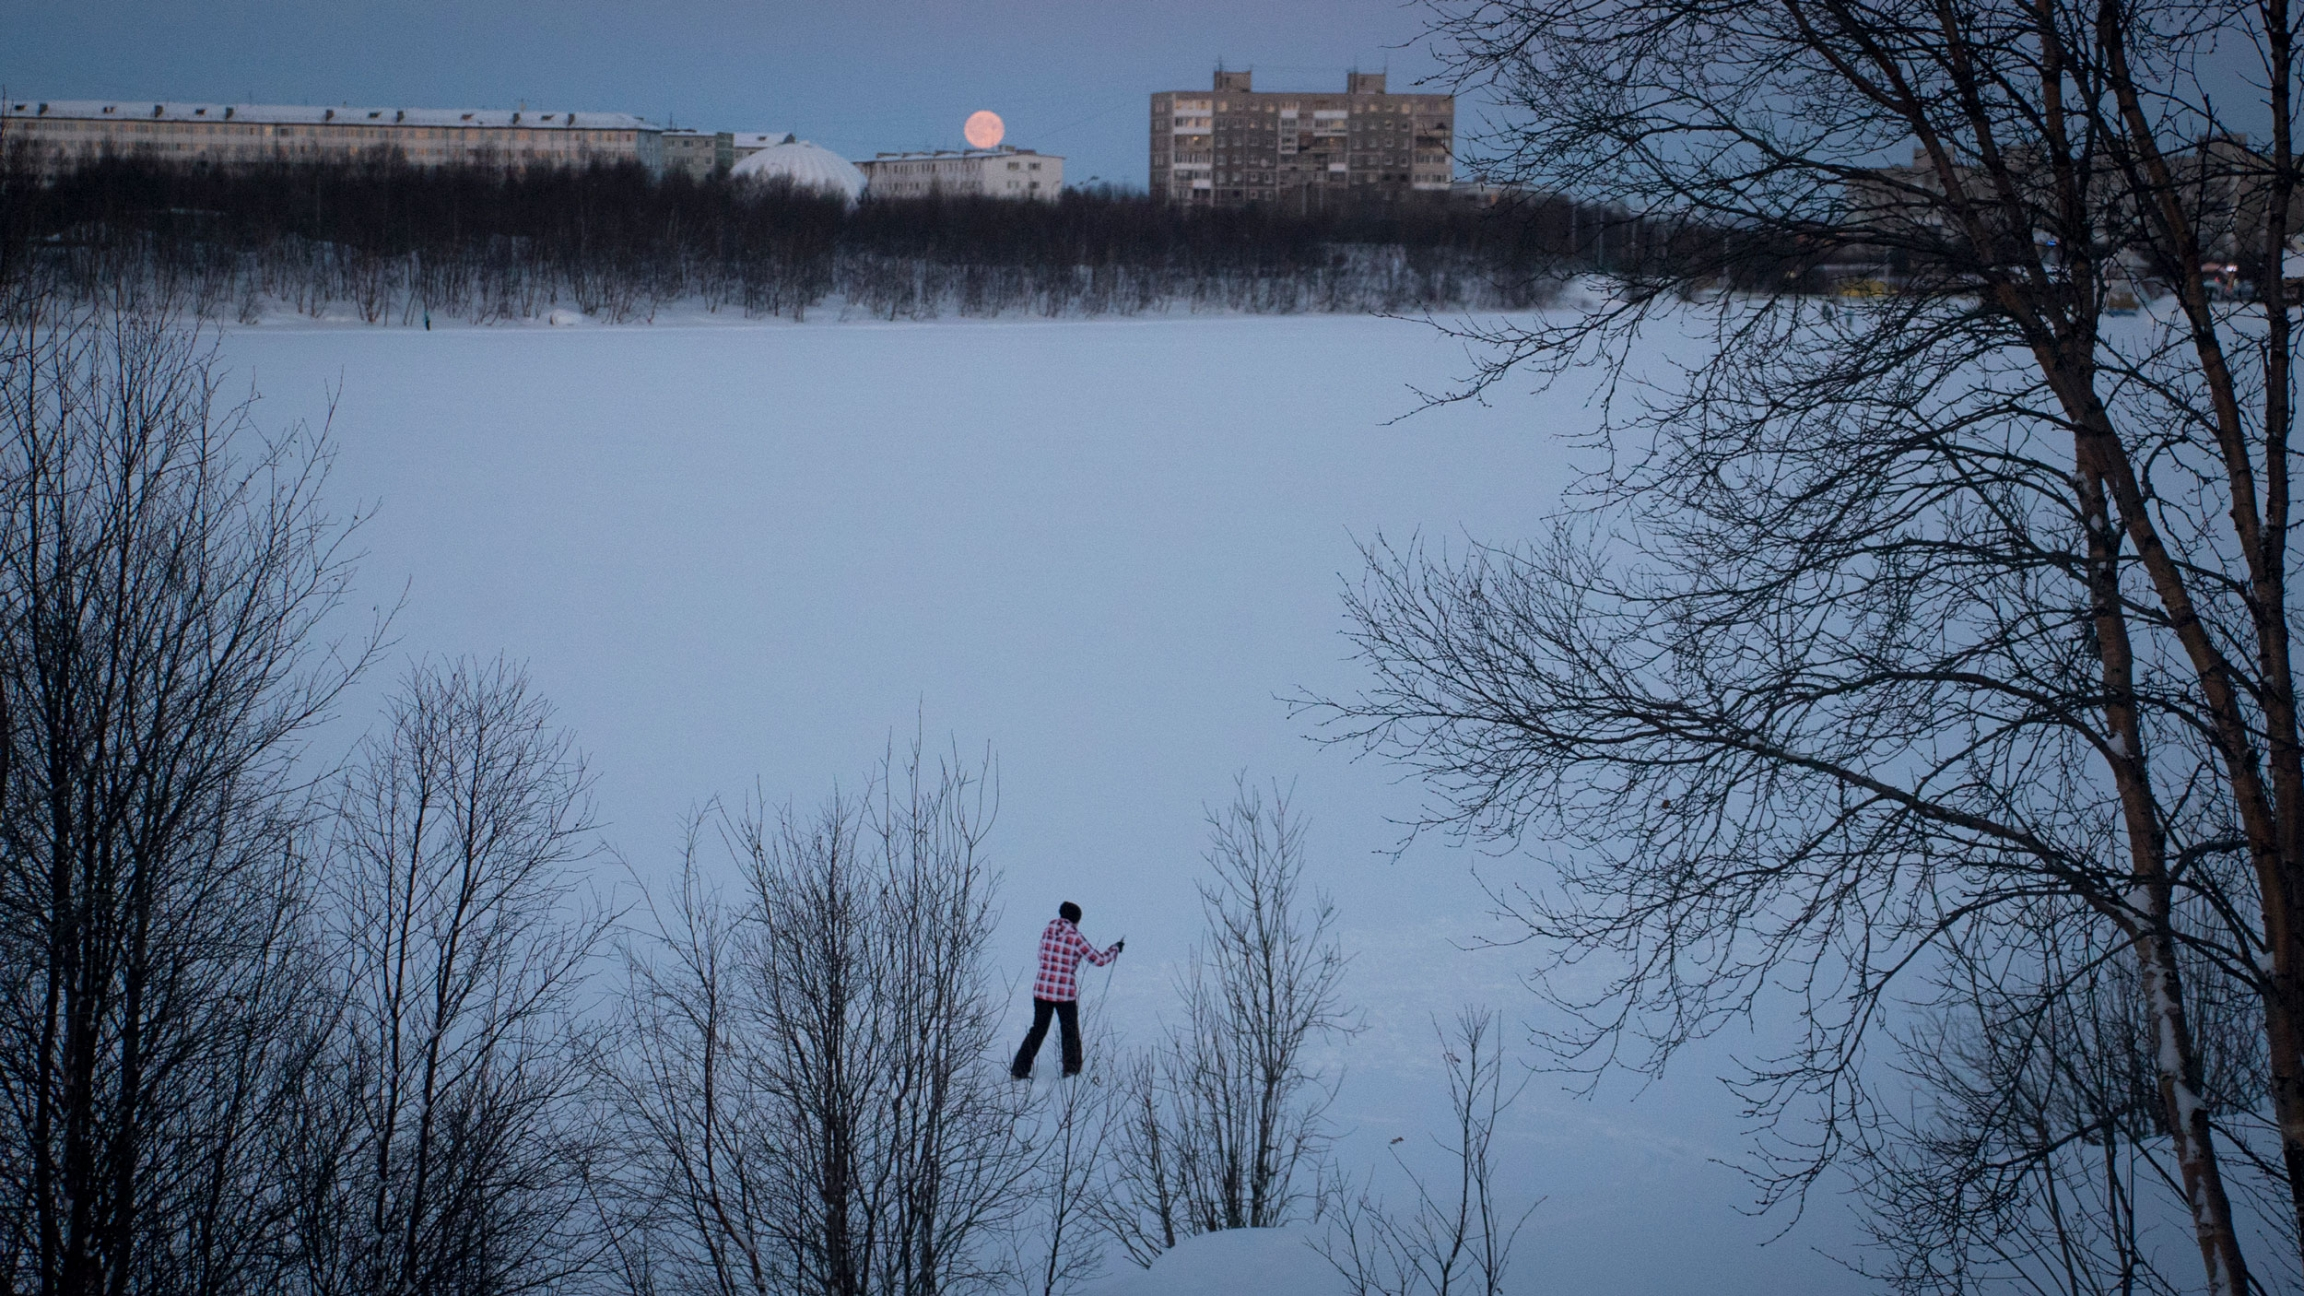 A person skis across a large snow-covered area with trees in the nearground and brick building and the moon in the background.